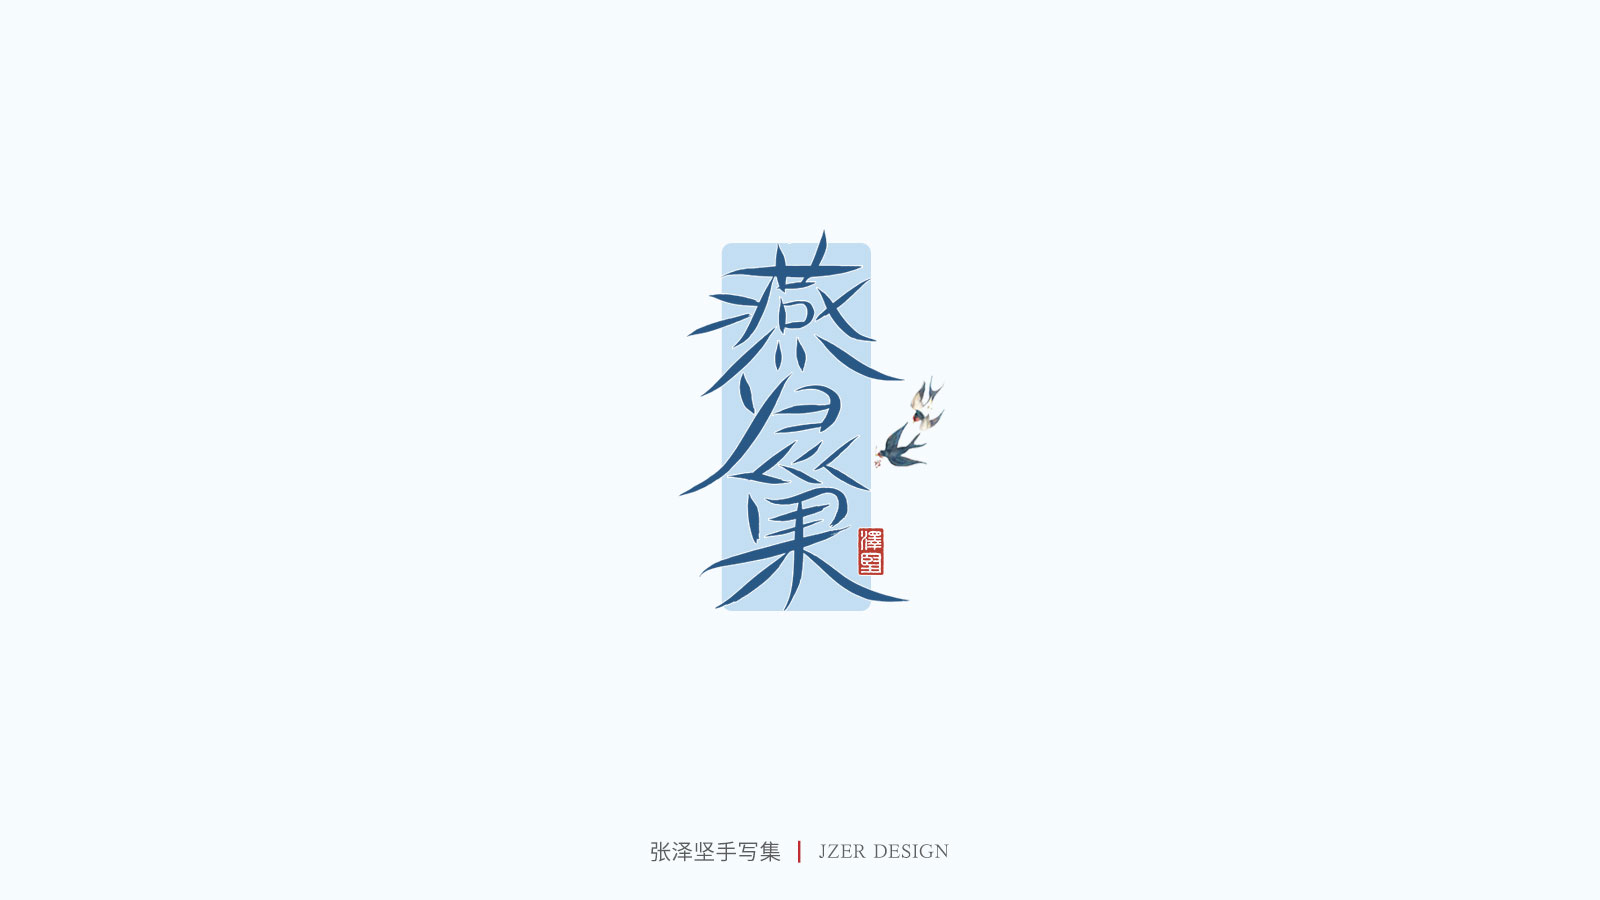 30P Collection of the latest Chinese font design schemes in 2021 #.89